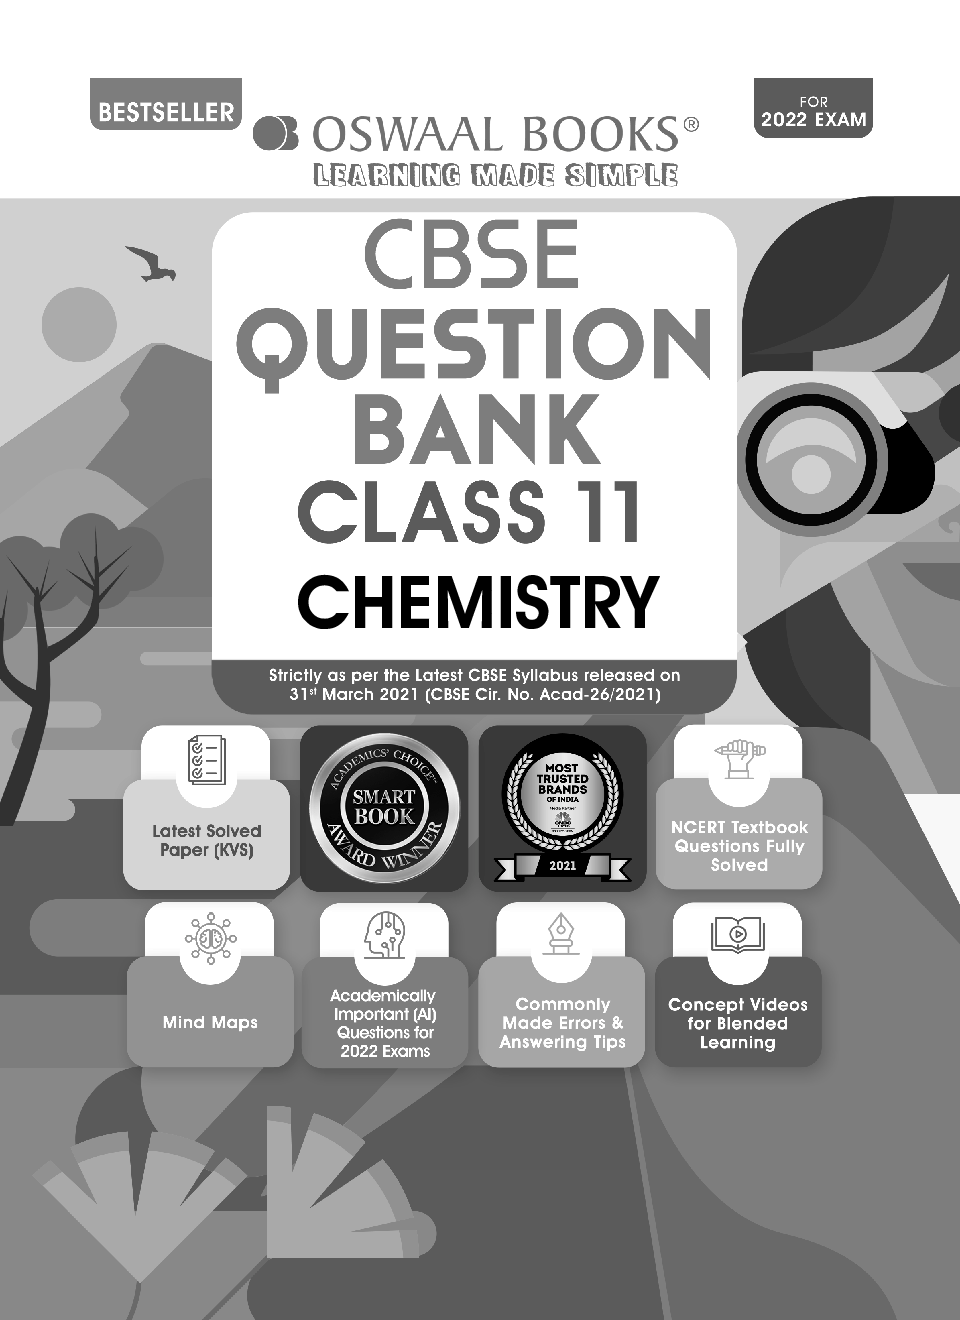 Oswaal CBSE Question Bank Class 11 Chemistry Book Chapterwise & Topicwise (For 2022 Exam) - Page 2